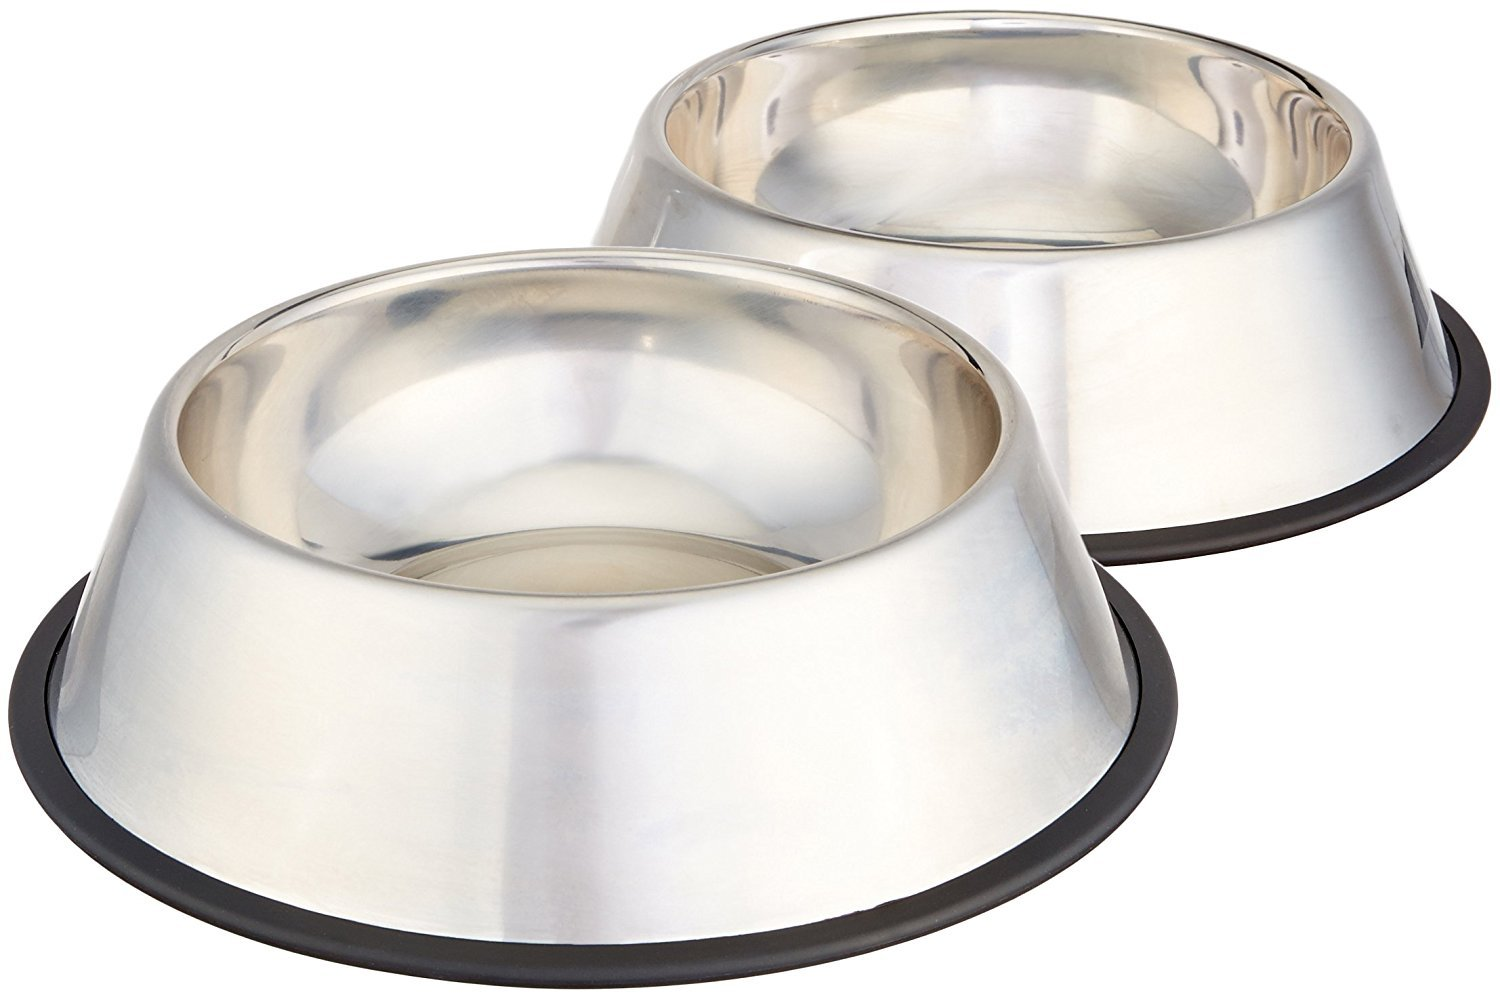 Pets Empire Stainless Steel Dog Bowl (Medium, Set of 2) product image